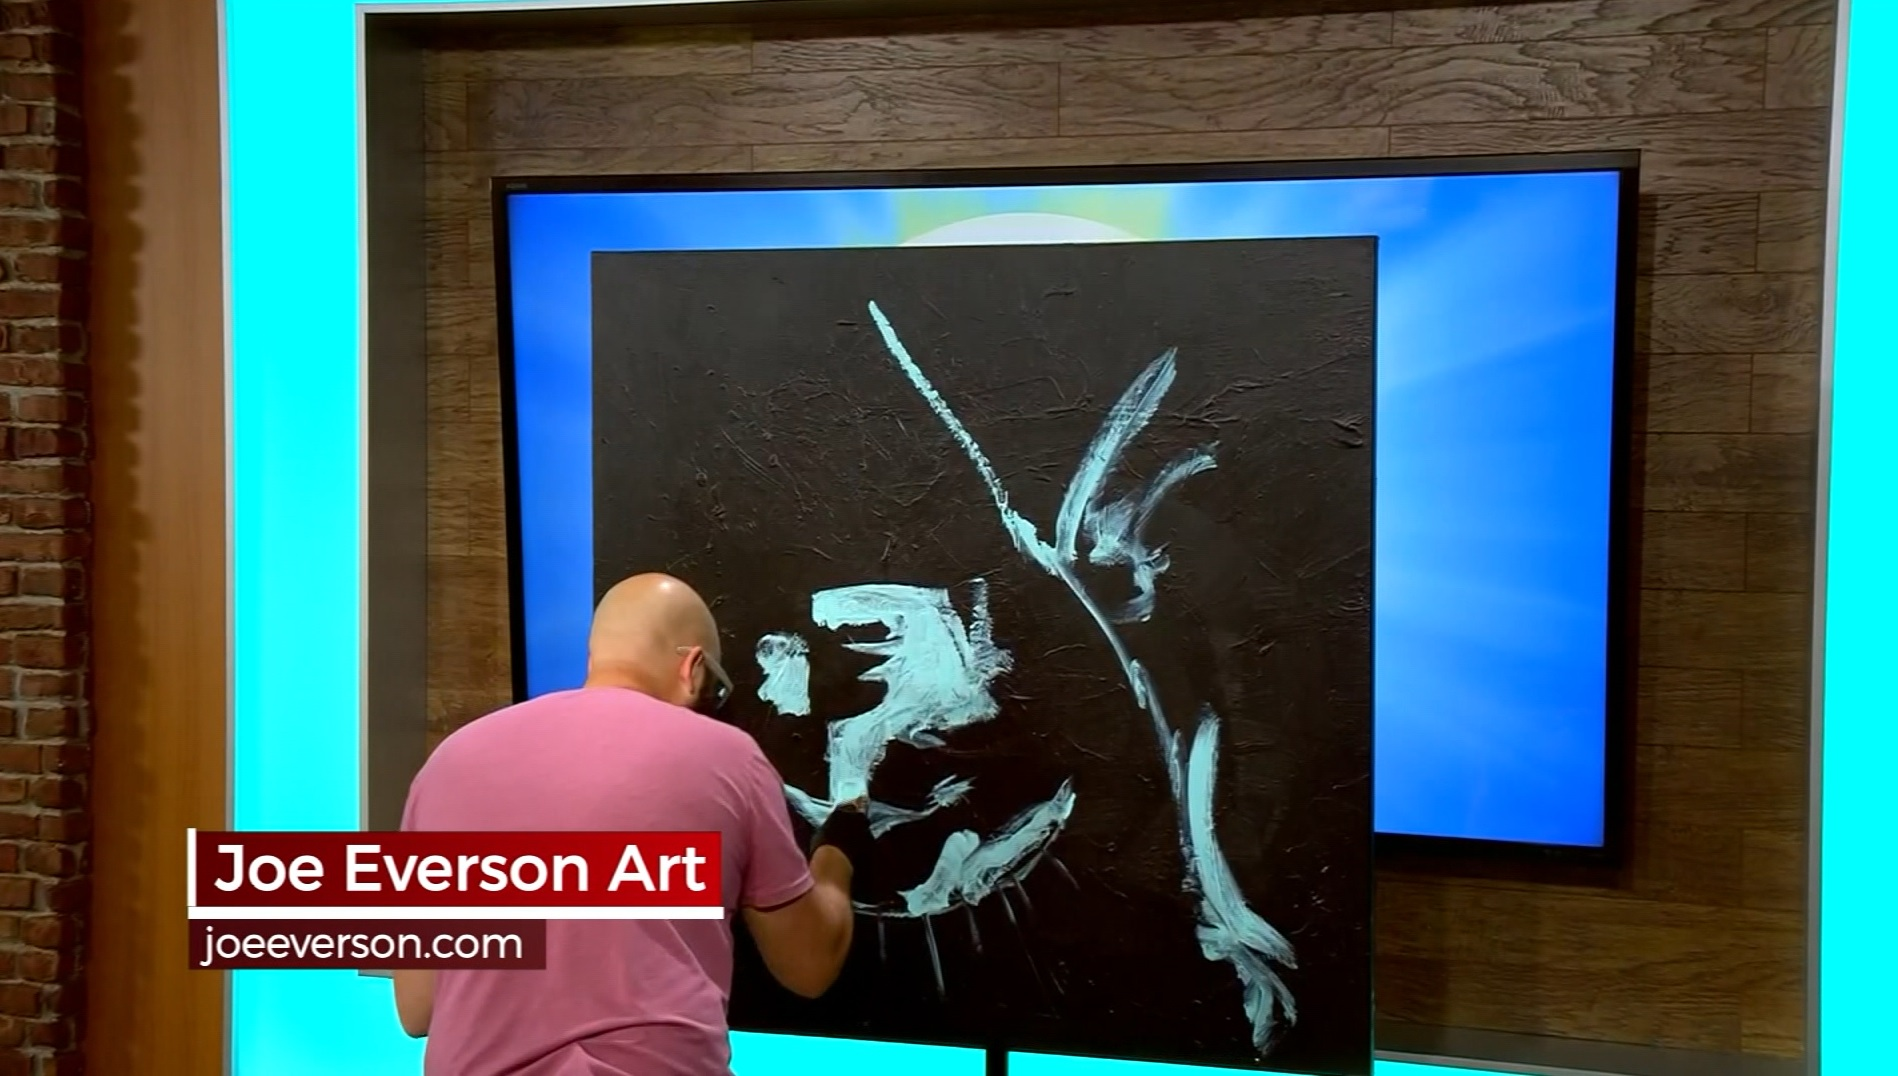 Greenville artist Joe Everson makes July 4 special with live